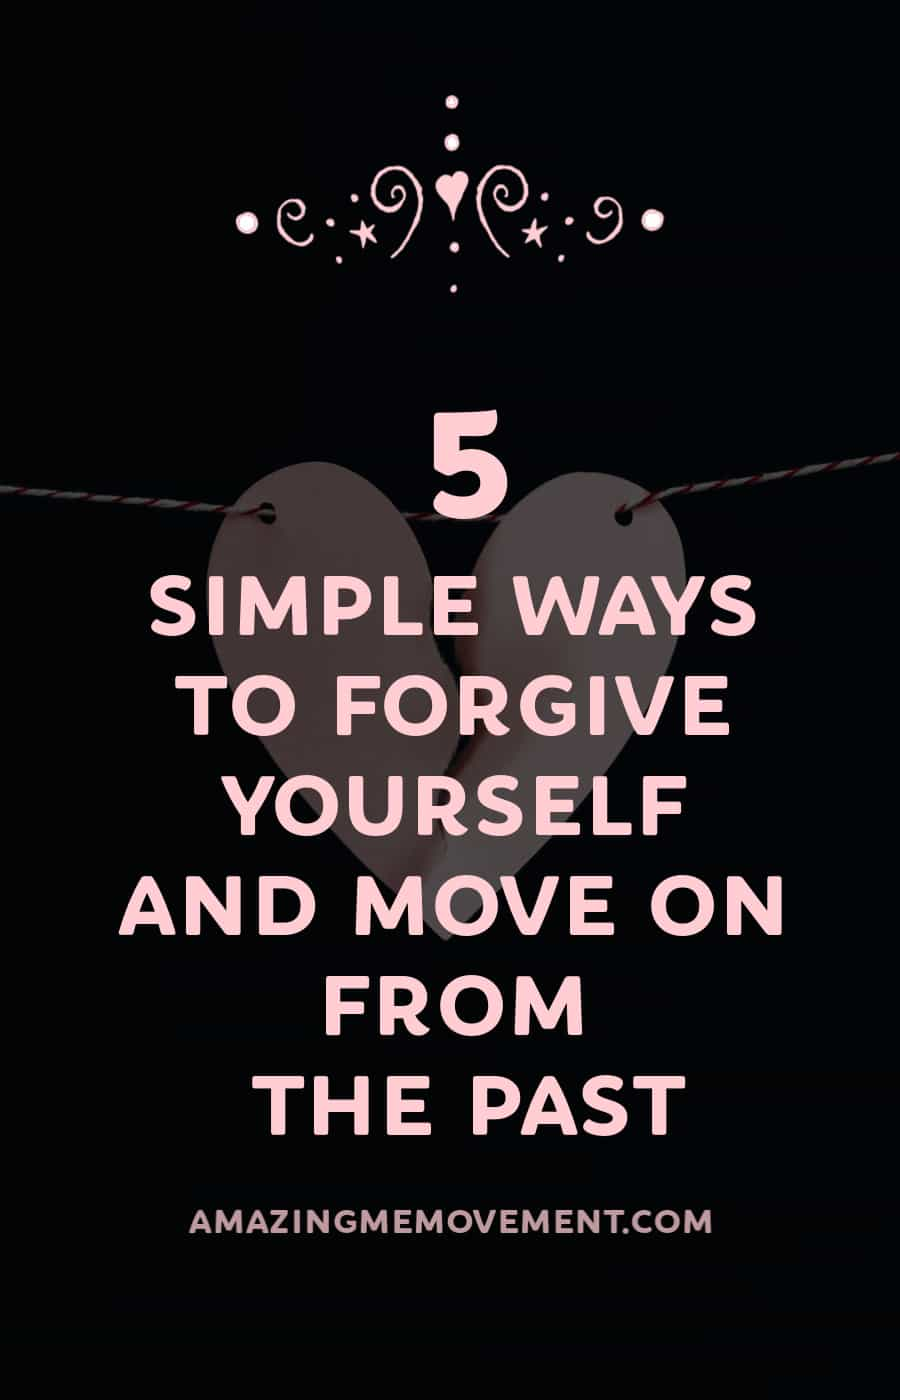 5 steps to forgive yourself and move on from the past